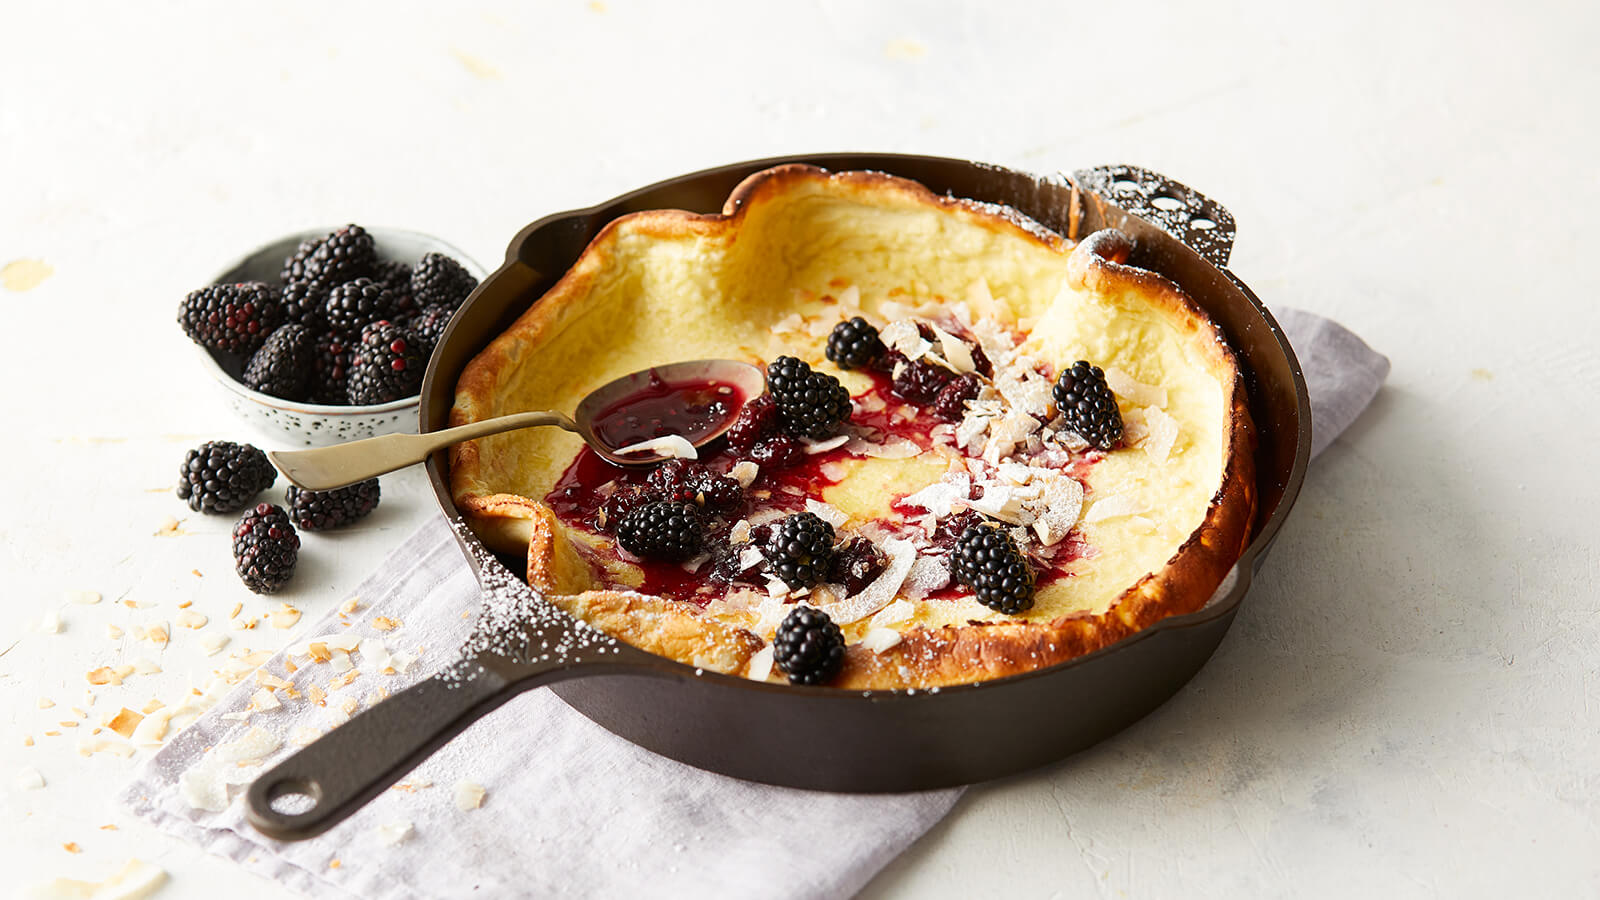 Dutch Baby Pancake with Blackberries and Toasted Coconut